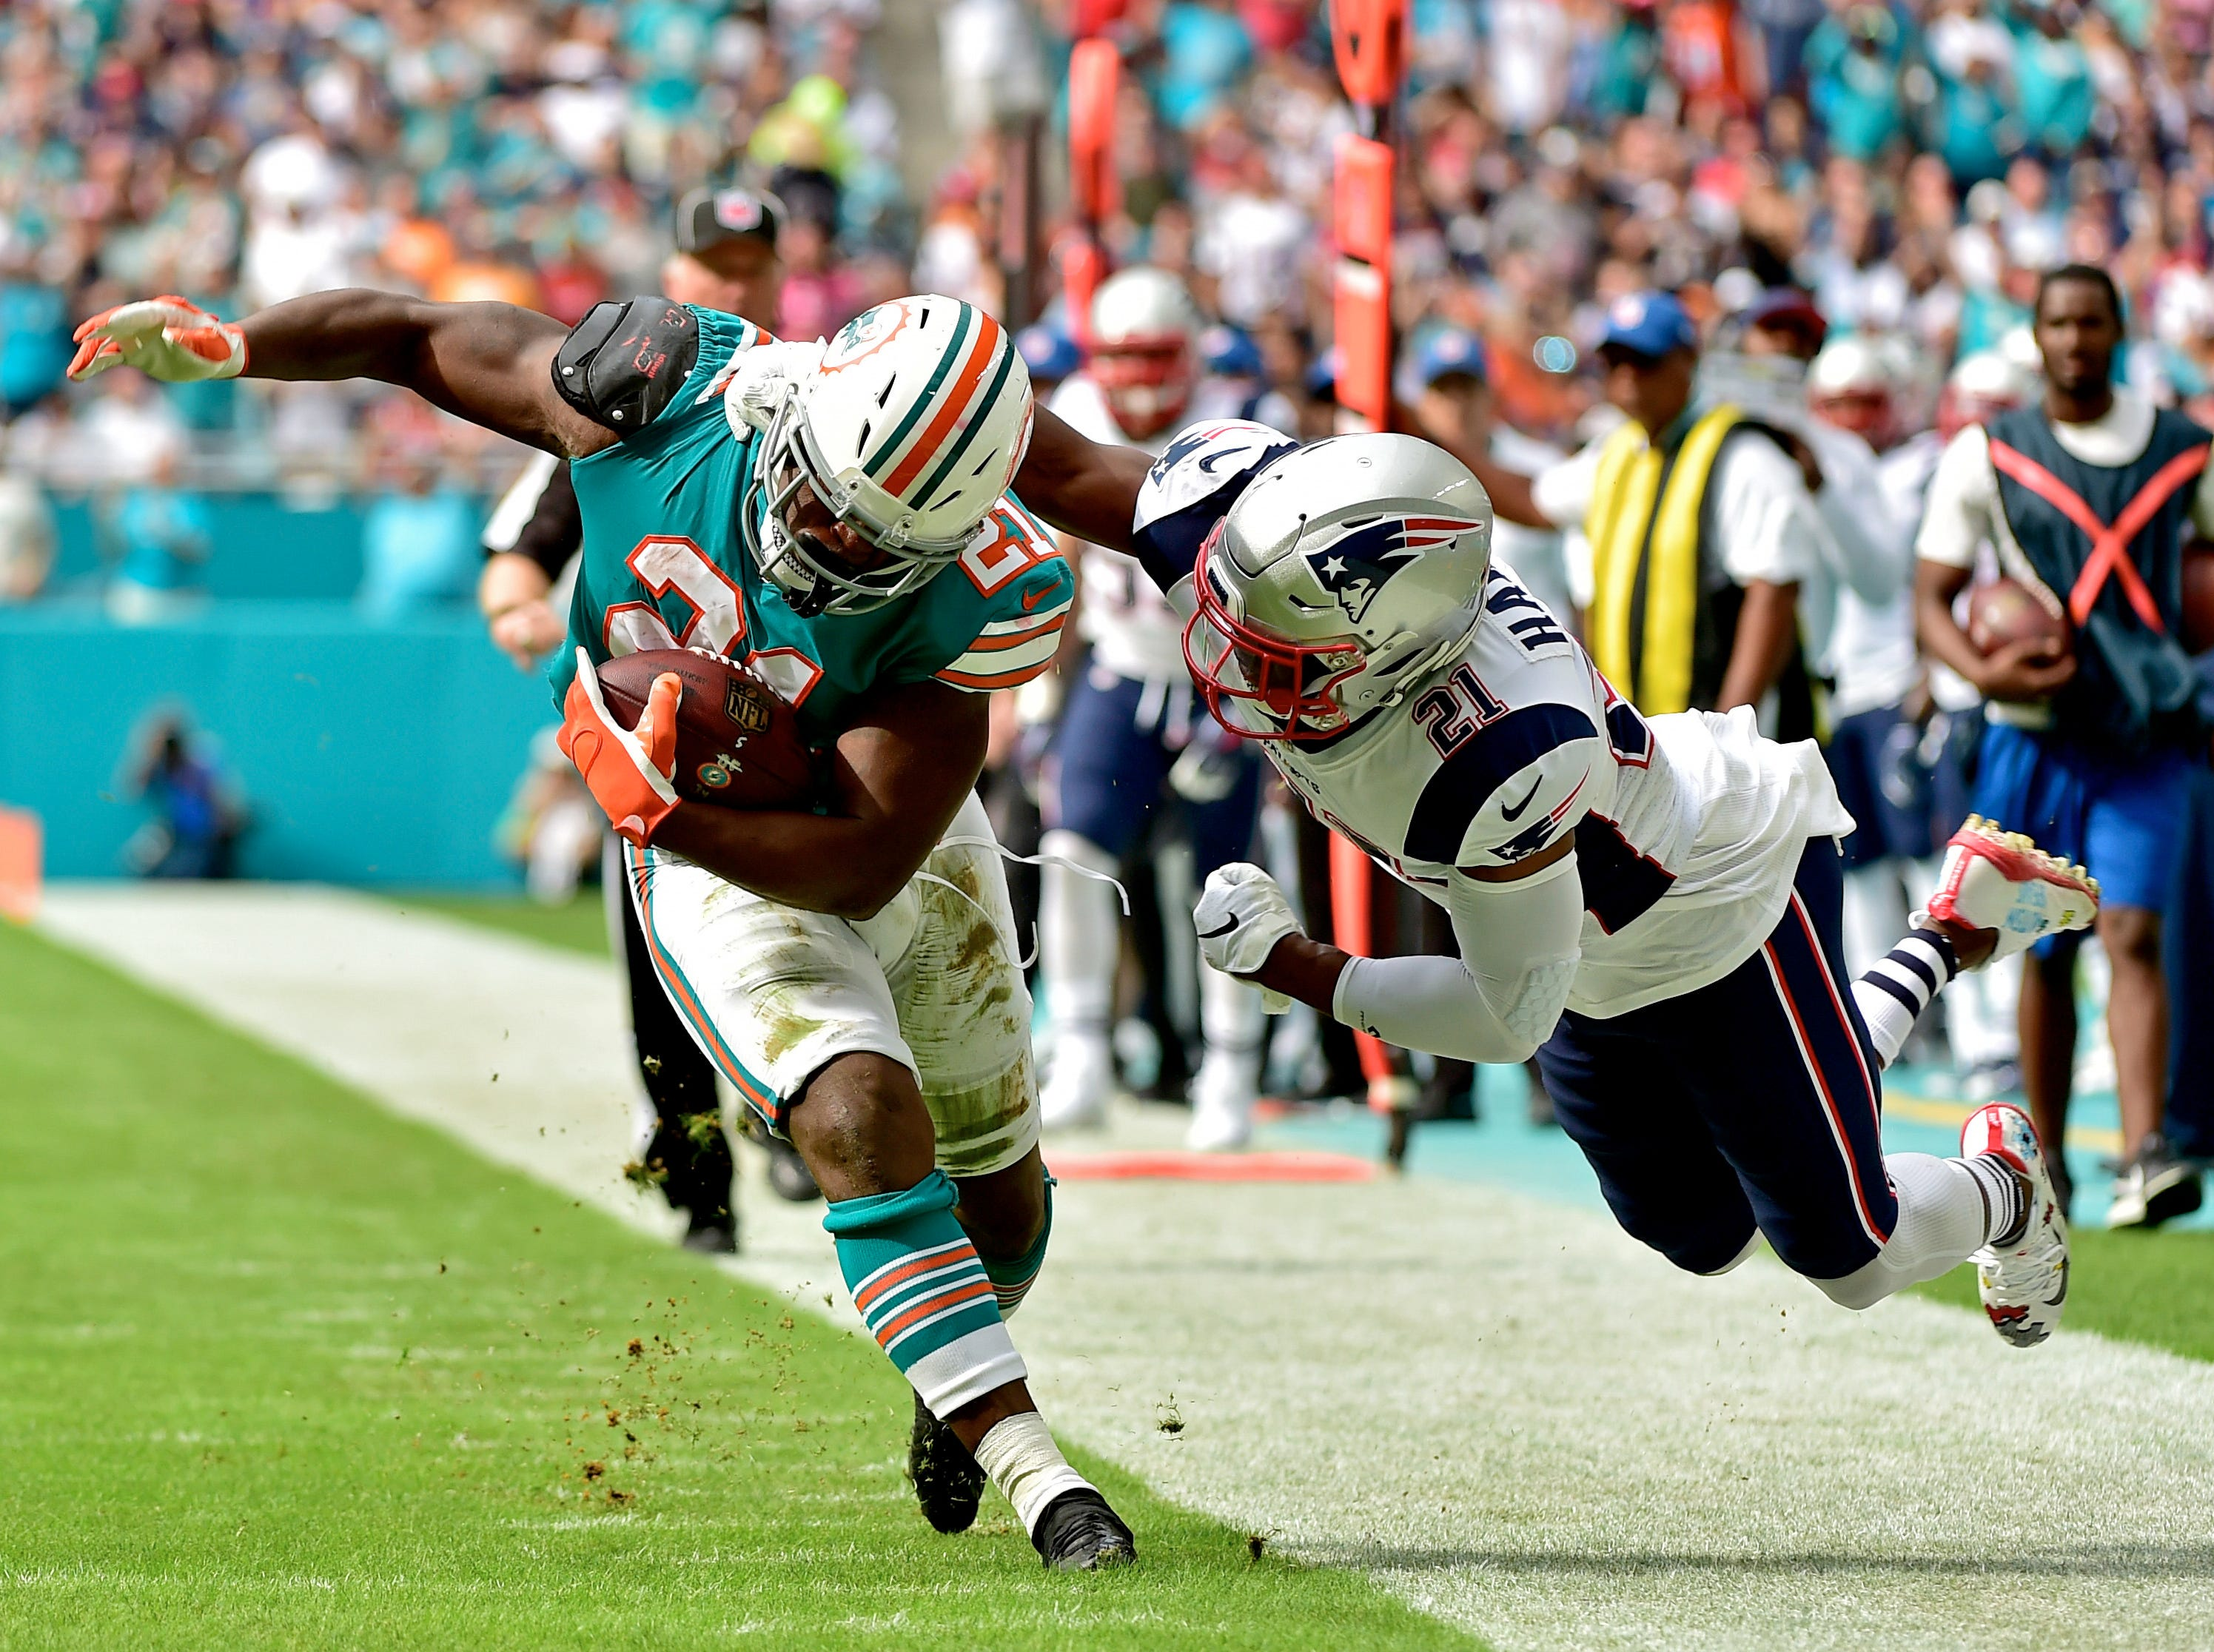 Patriots safety Duron Harmon tackles Dolphins running back Frank Gore during the first half.